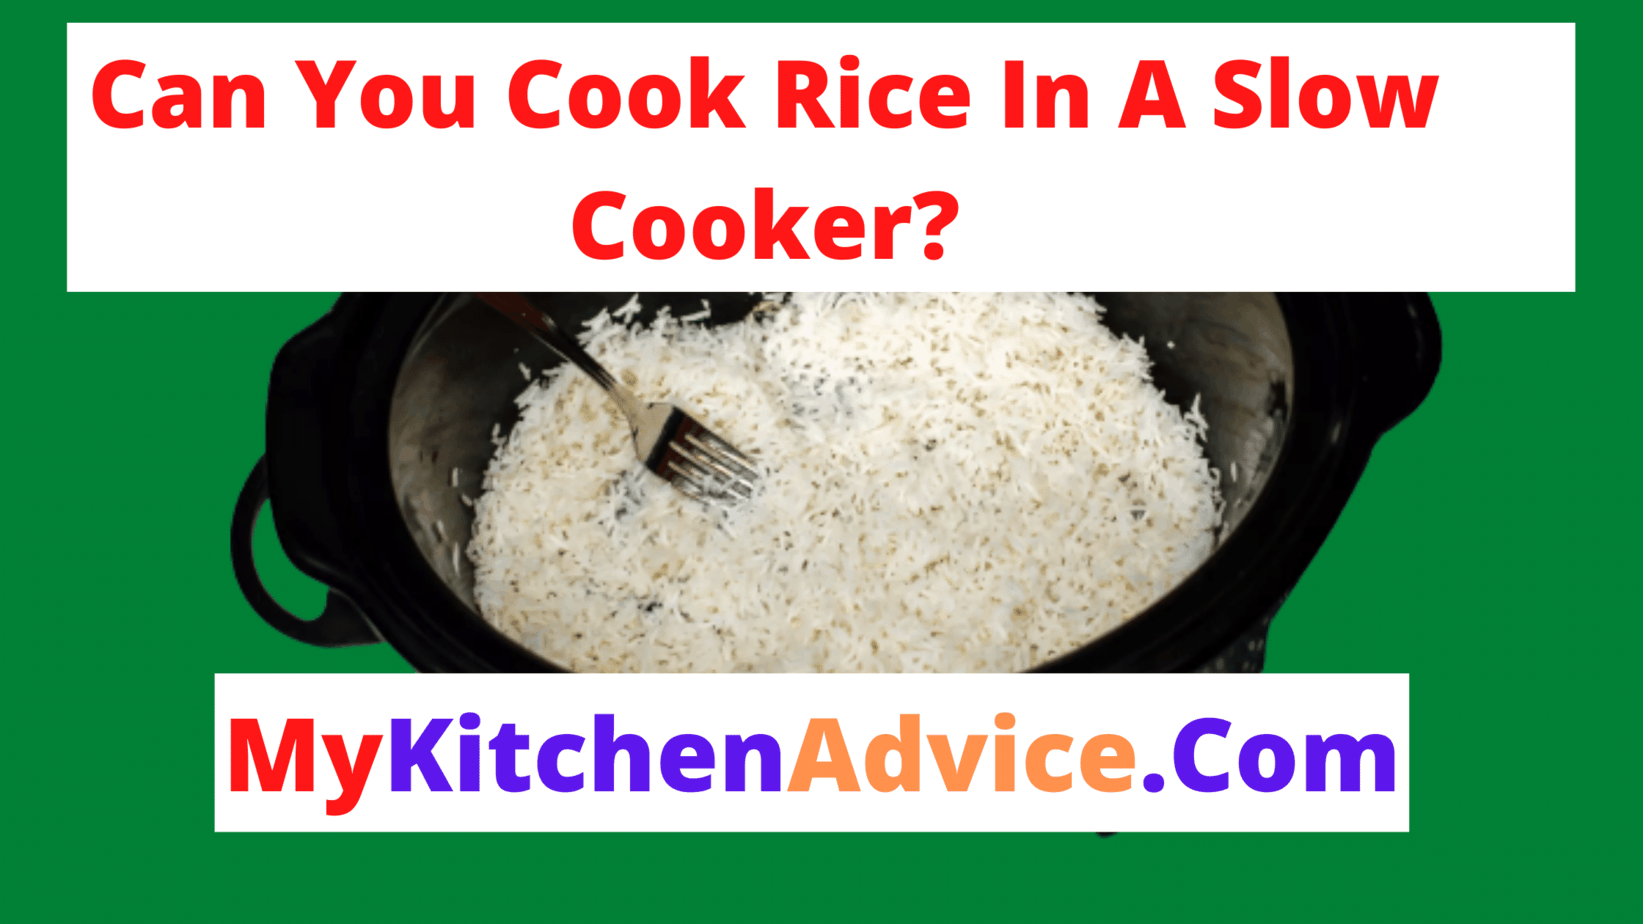 Can You Cook Rice In A Slow Cooker